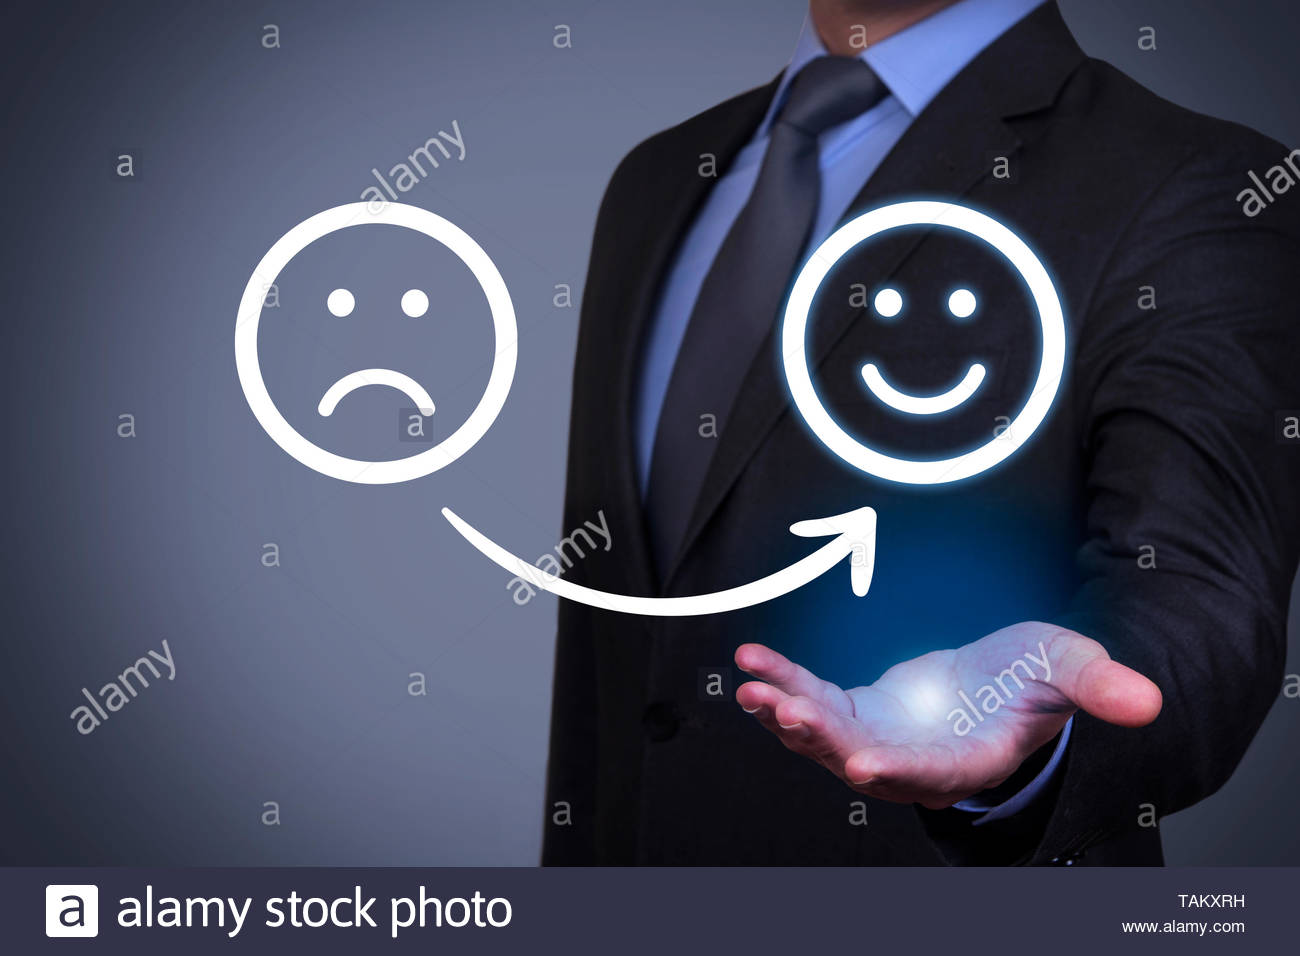 Unhappy and Happy Smileys on Human Hand - Stock Image